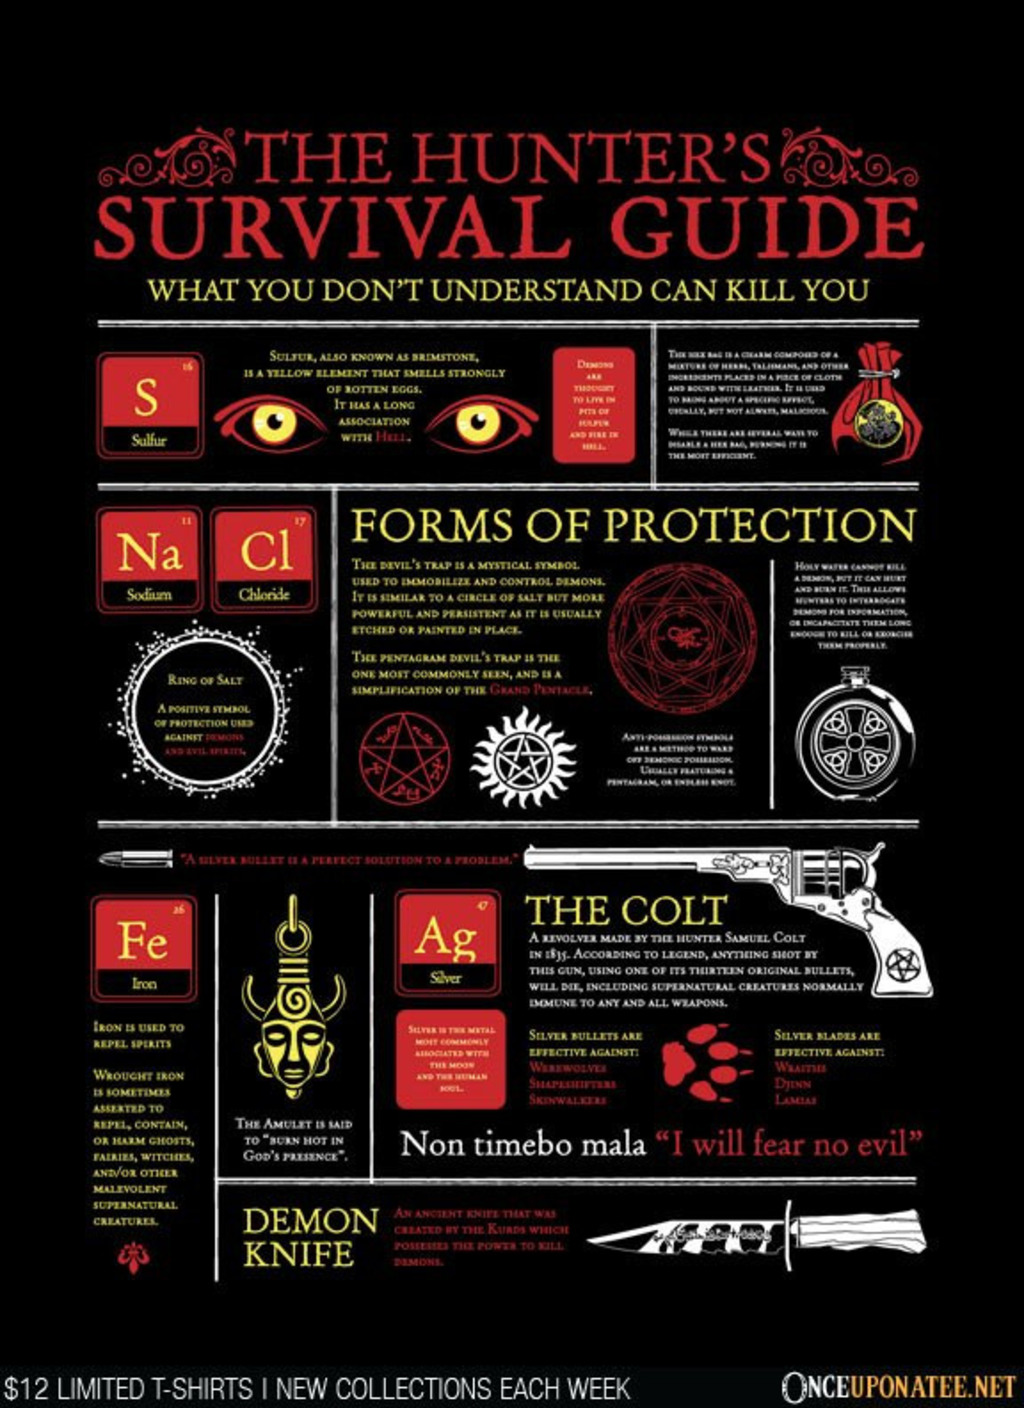 Once Upon a Tee: The Hunter's Survival Guide